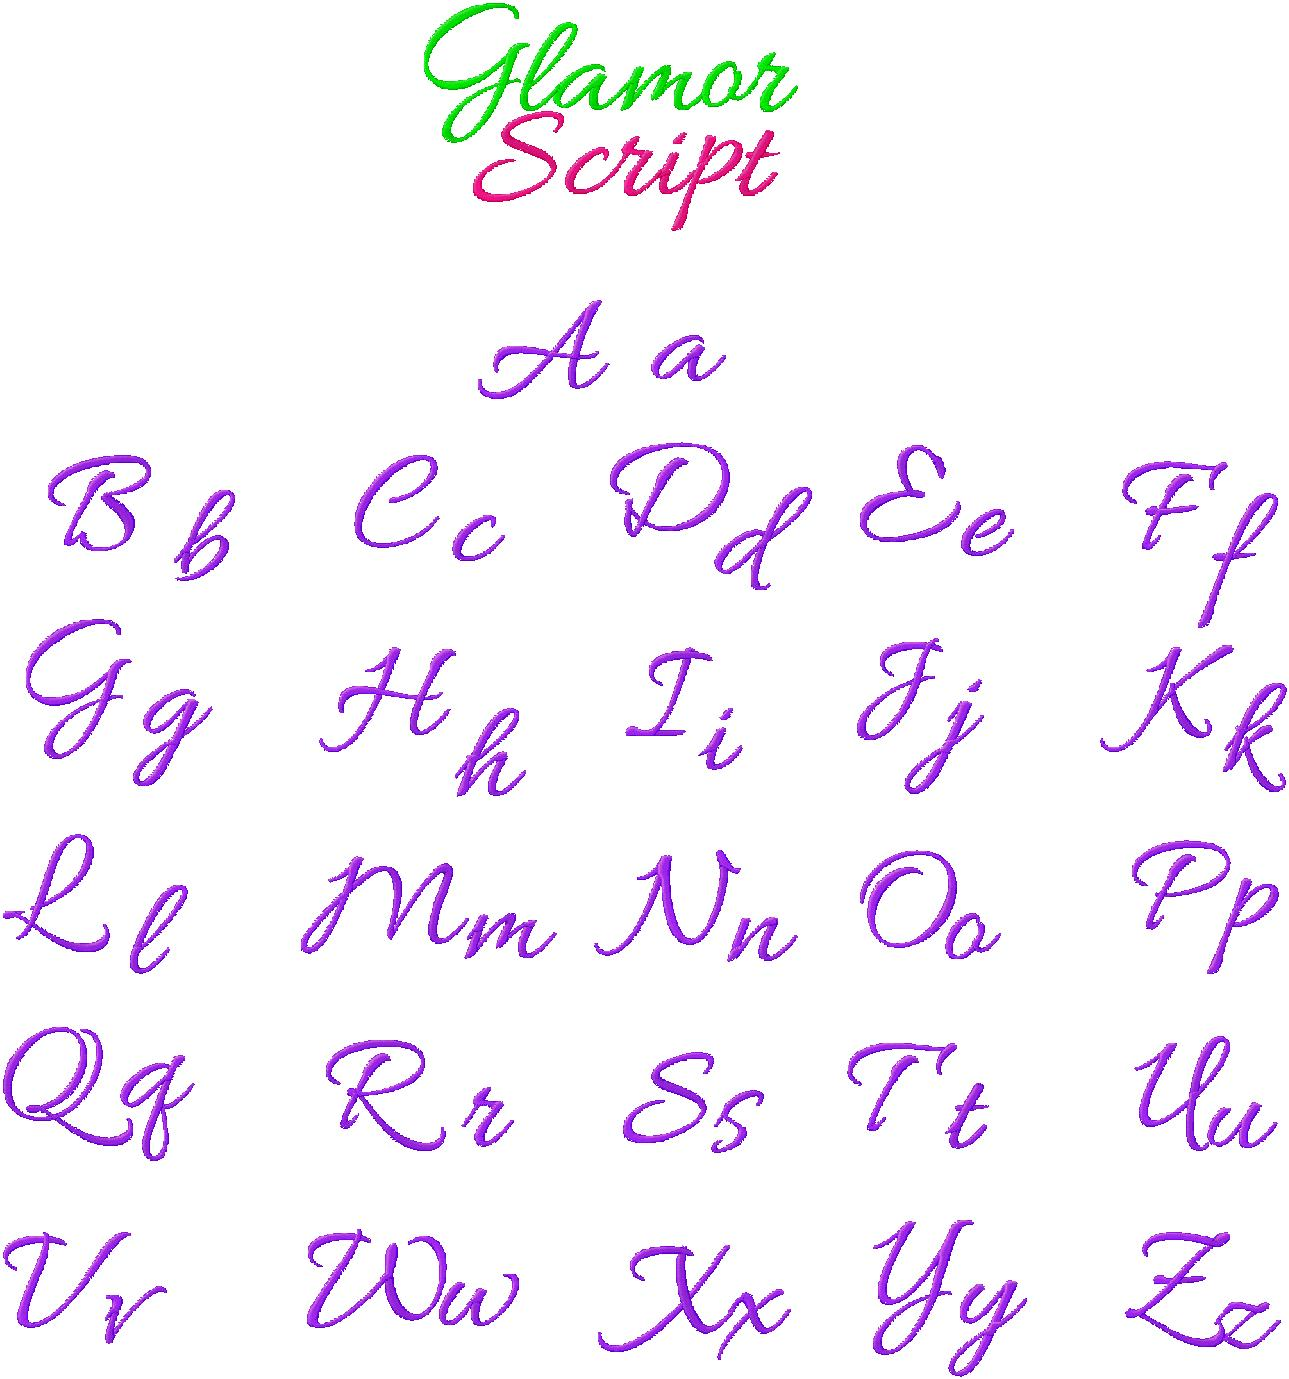 Cursive Embroidery Font Glamour Script | Daily Embroidery